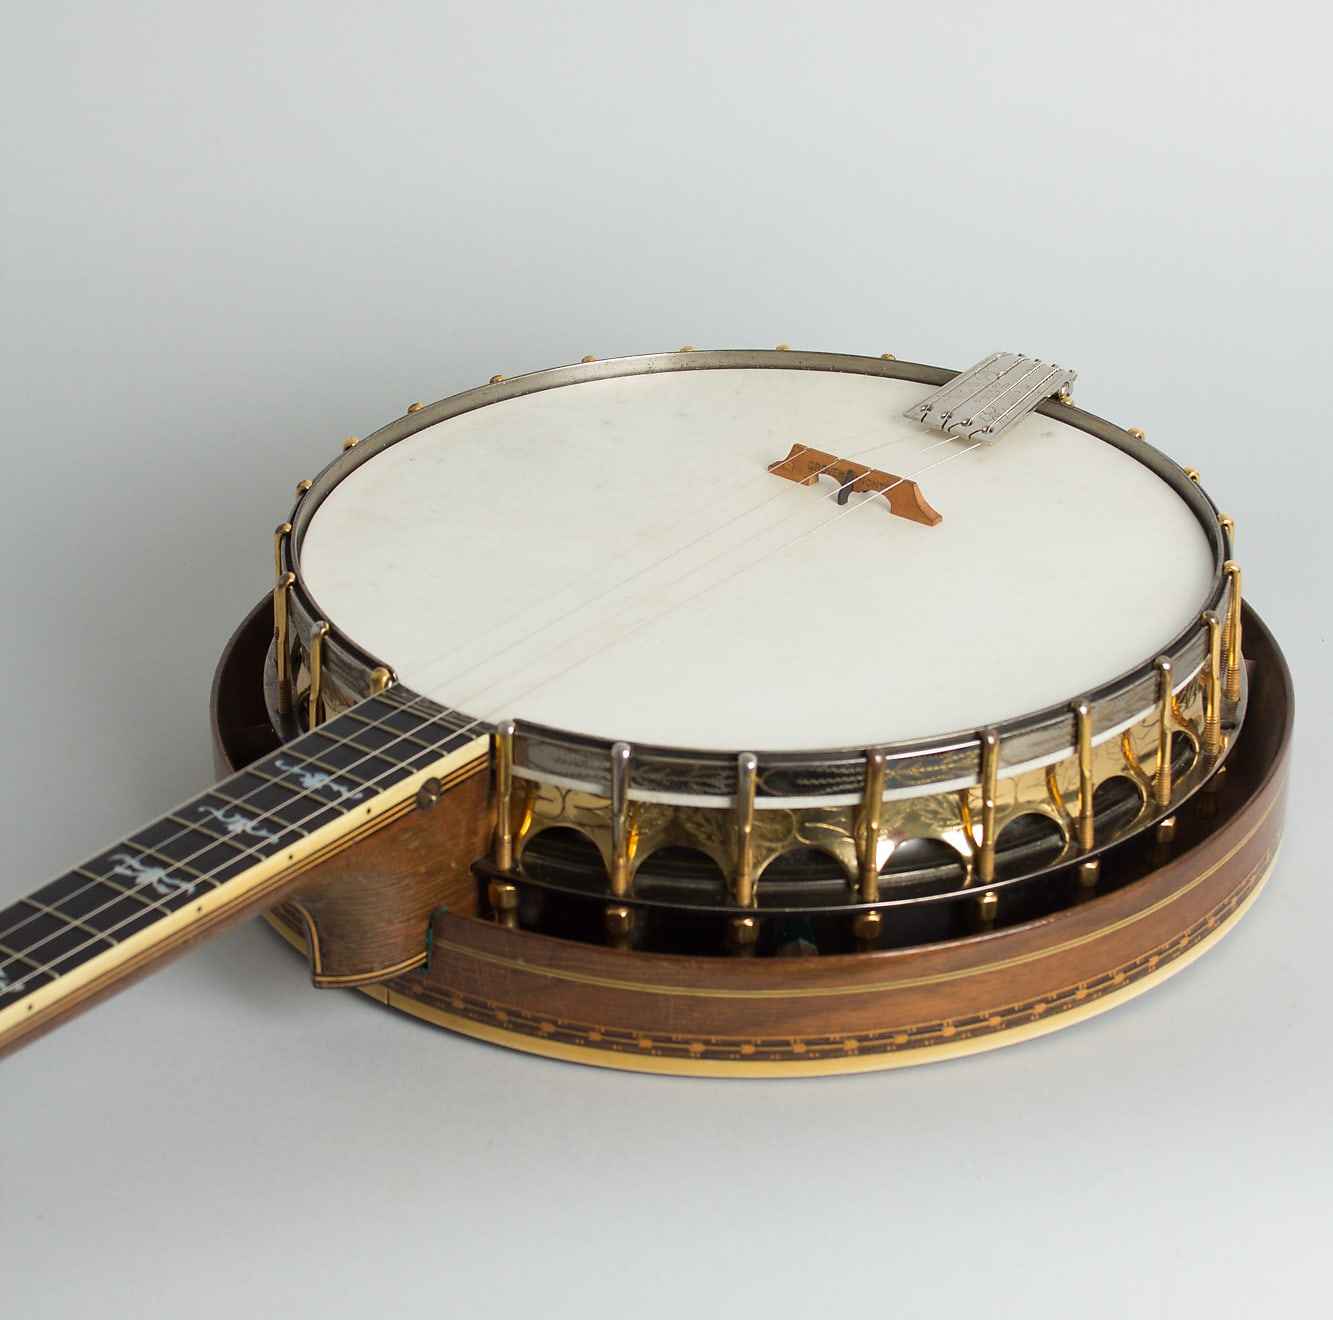 Ludwig  Stratford Plectrum Banjo (1925), ser. #4168, original black hard shell case.